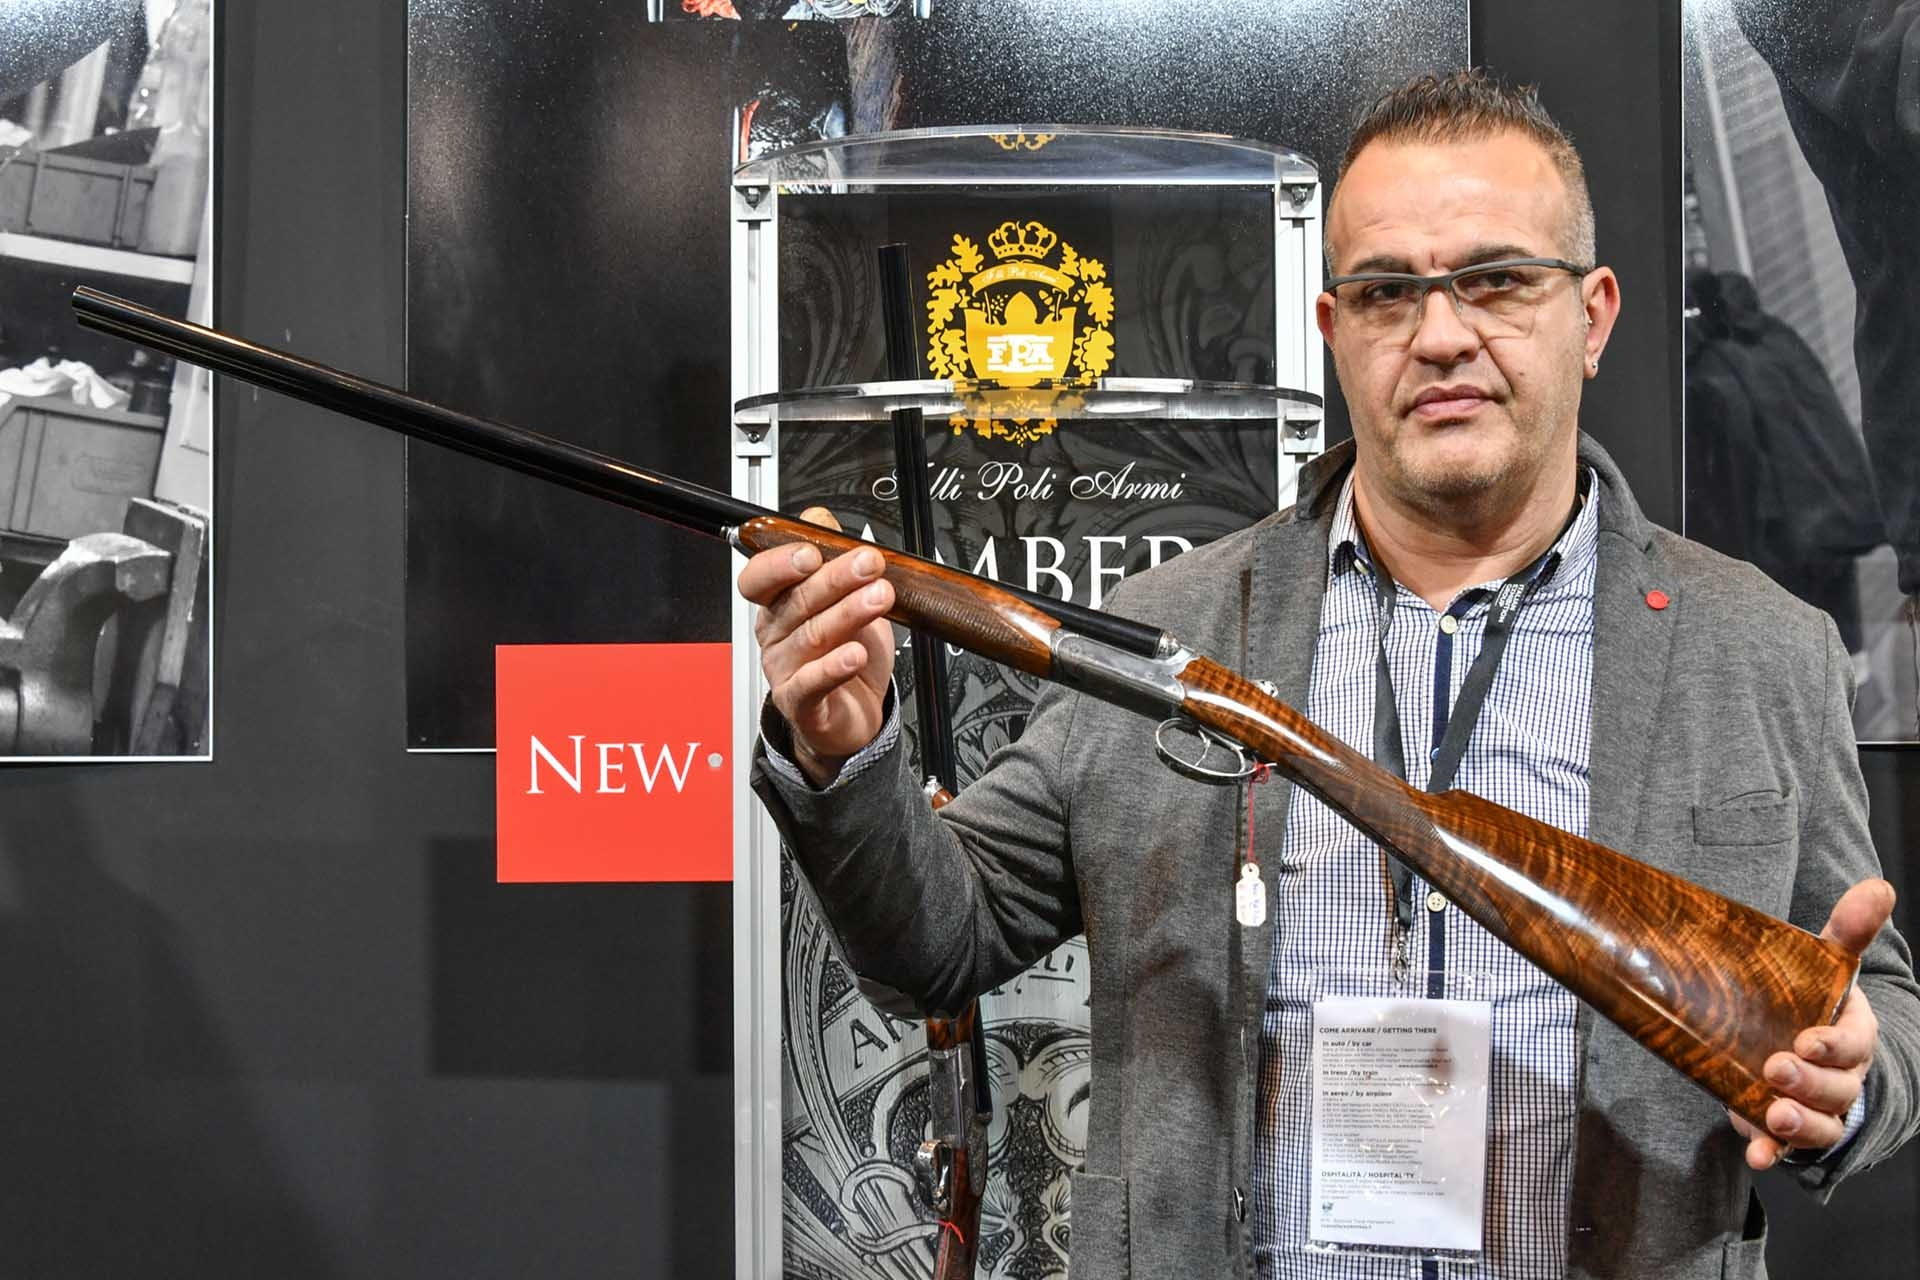 The new Fratelli Poli Amber side-by-side shotgun in 28 gauge